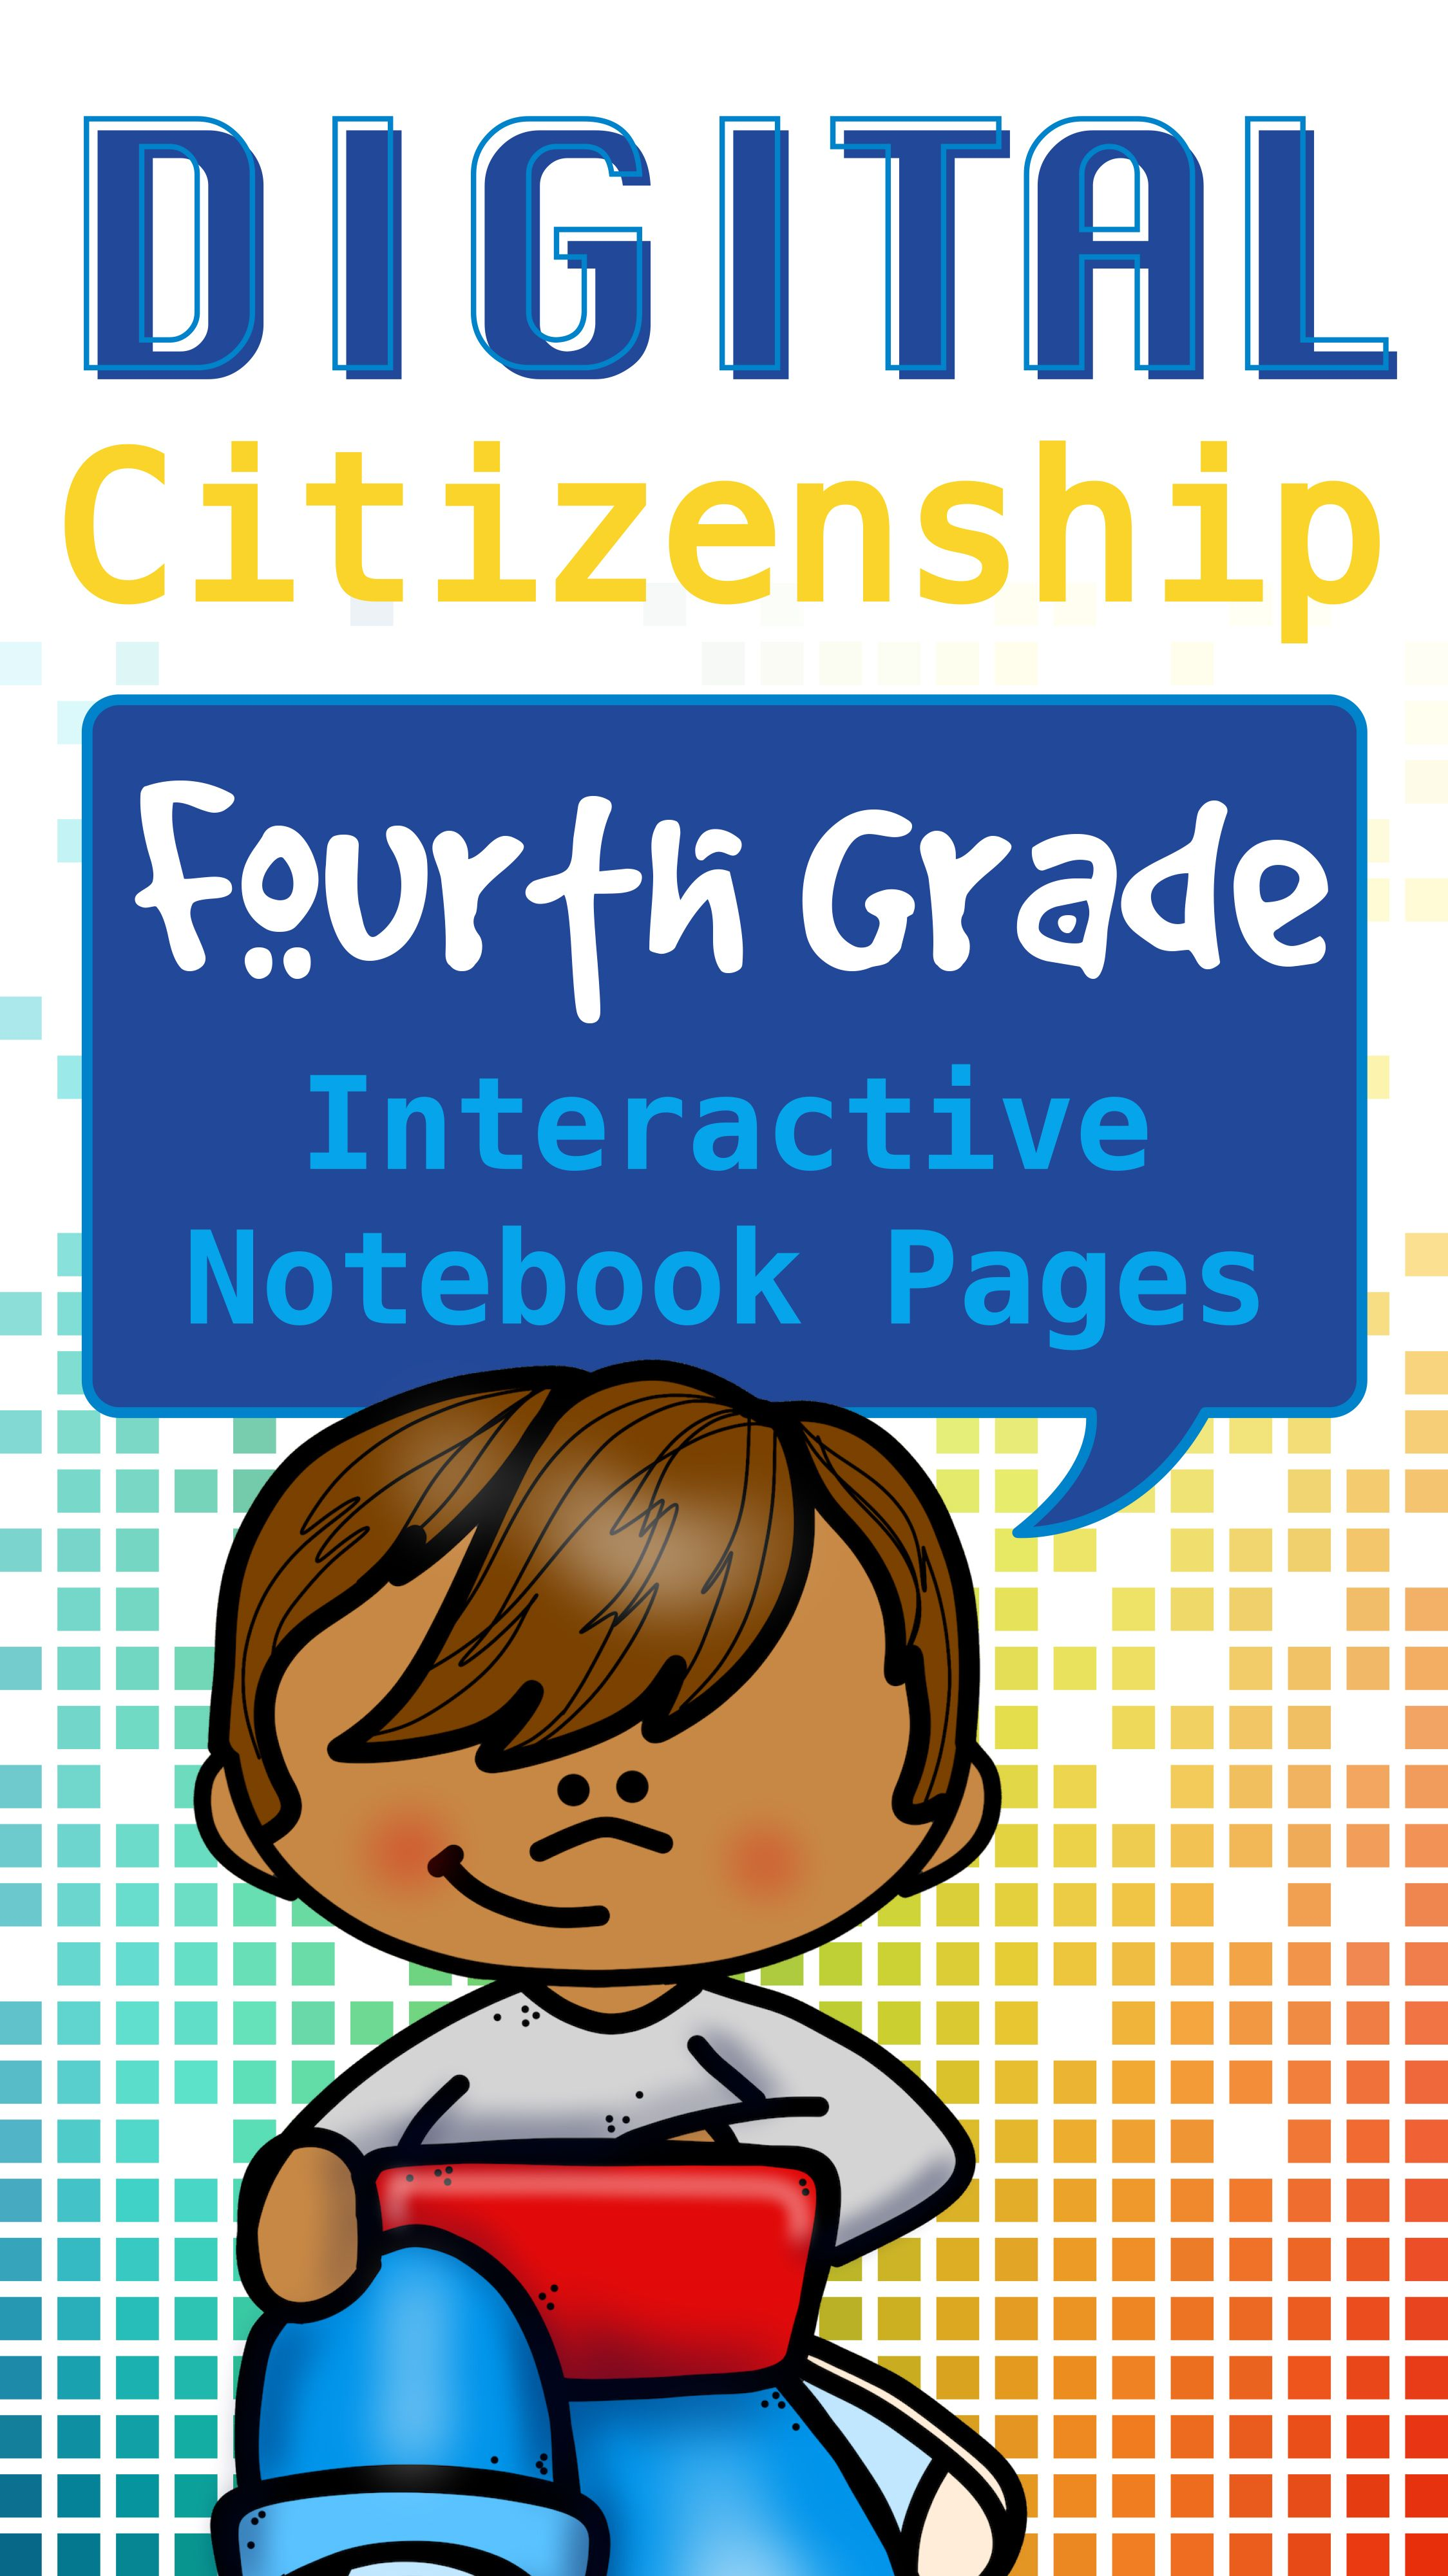 safety interactive notebook pages for 4th grade